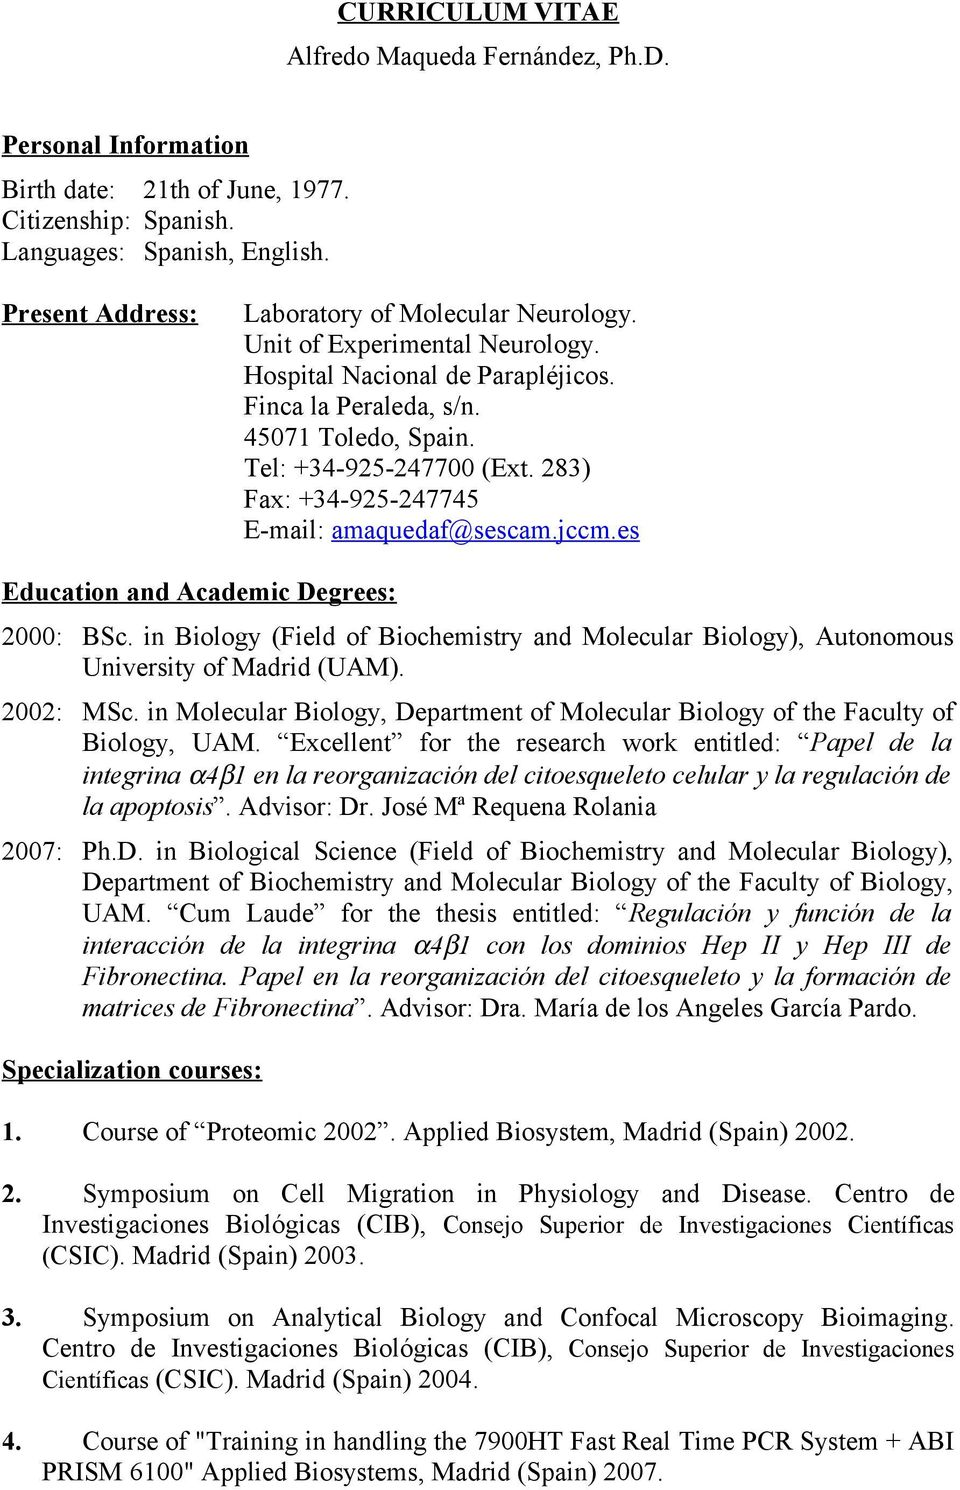 283) Fax: +34-925-247745 E-mail: amaquedaf@sescam.jccm.es Education and Academic Degrees: 2000: BSc. in Biology (Field of Biochemistry and Molecular Biology), Autonomous University of Madrid (UAM).